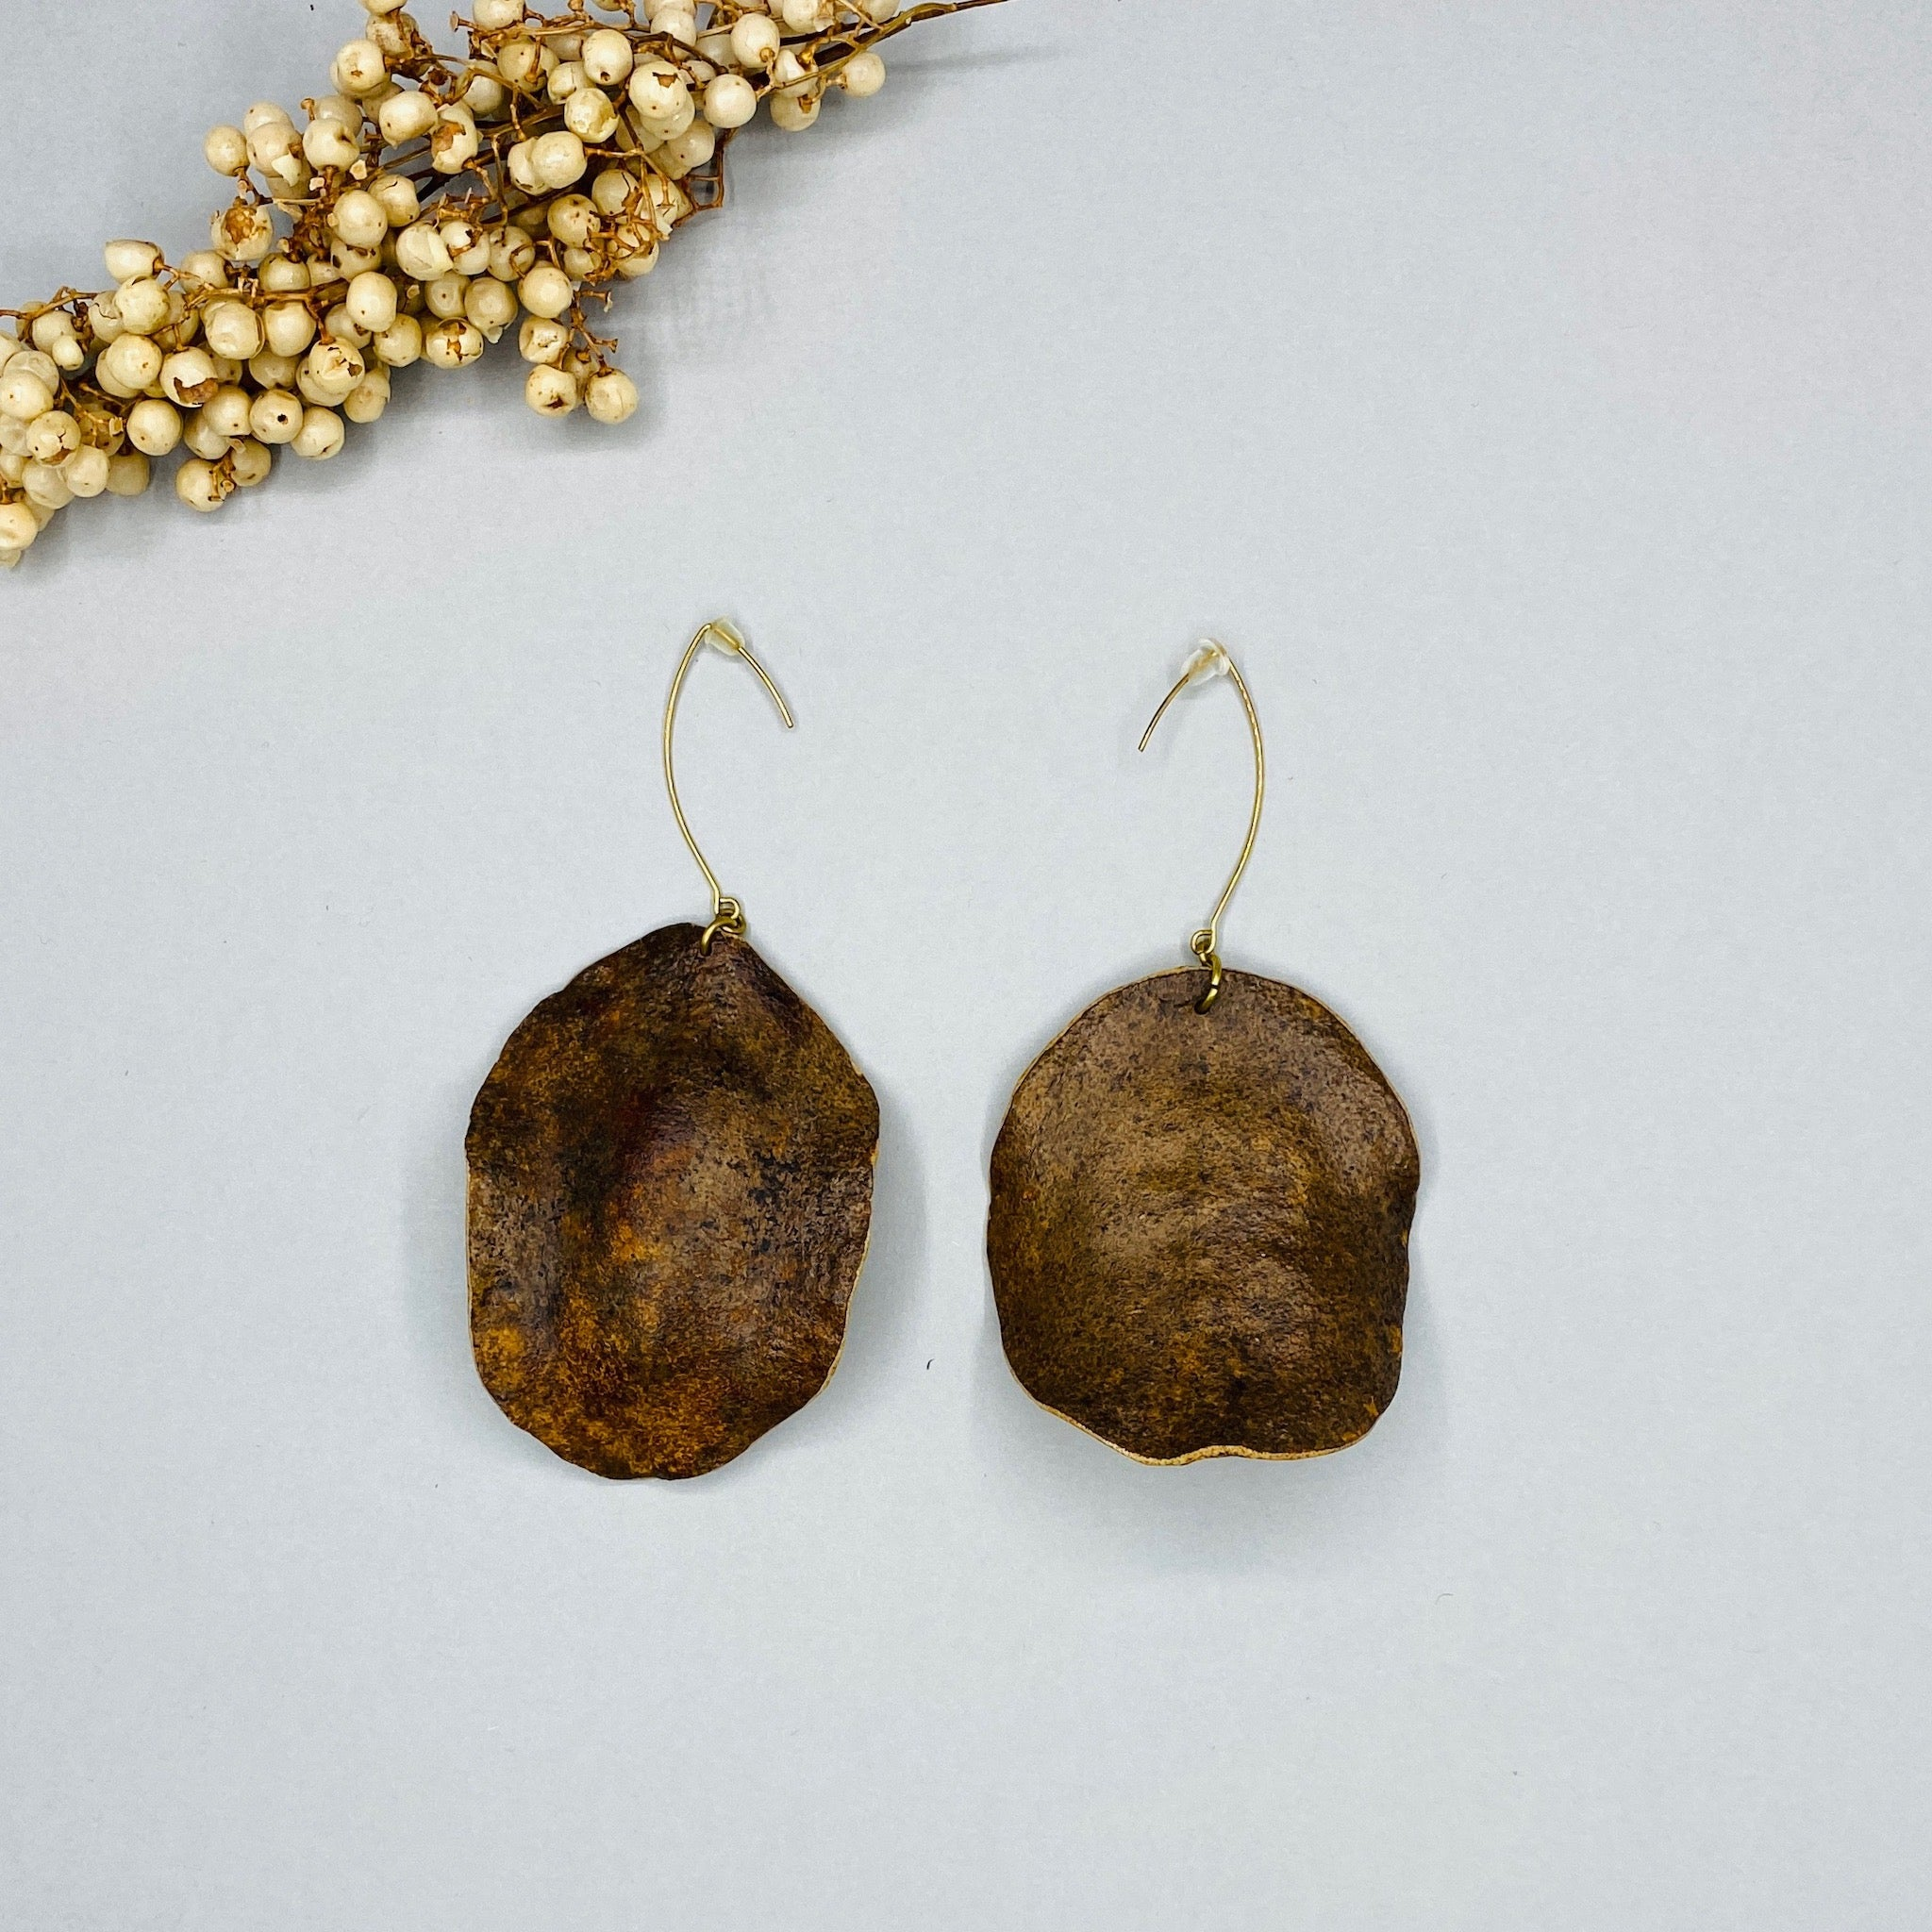 Jacaranda Earrings - N á t t ú r a l